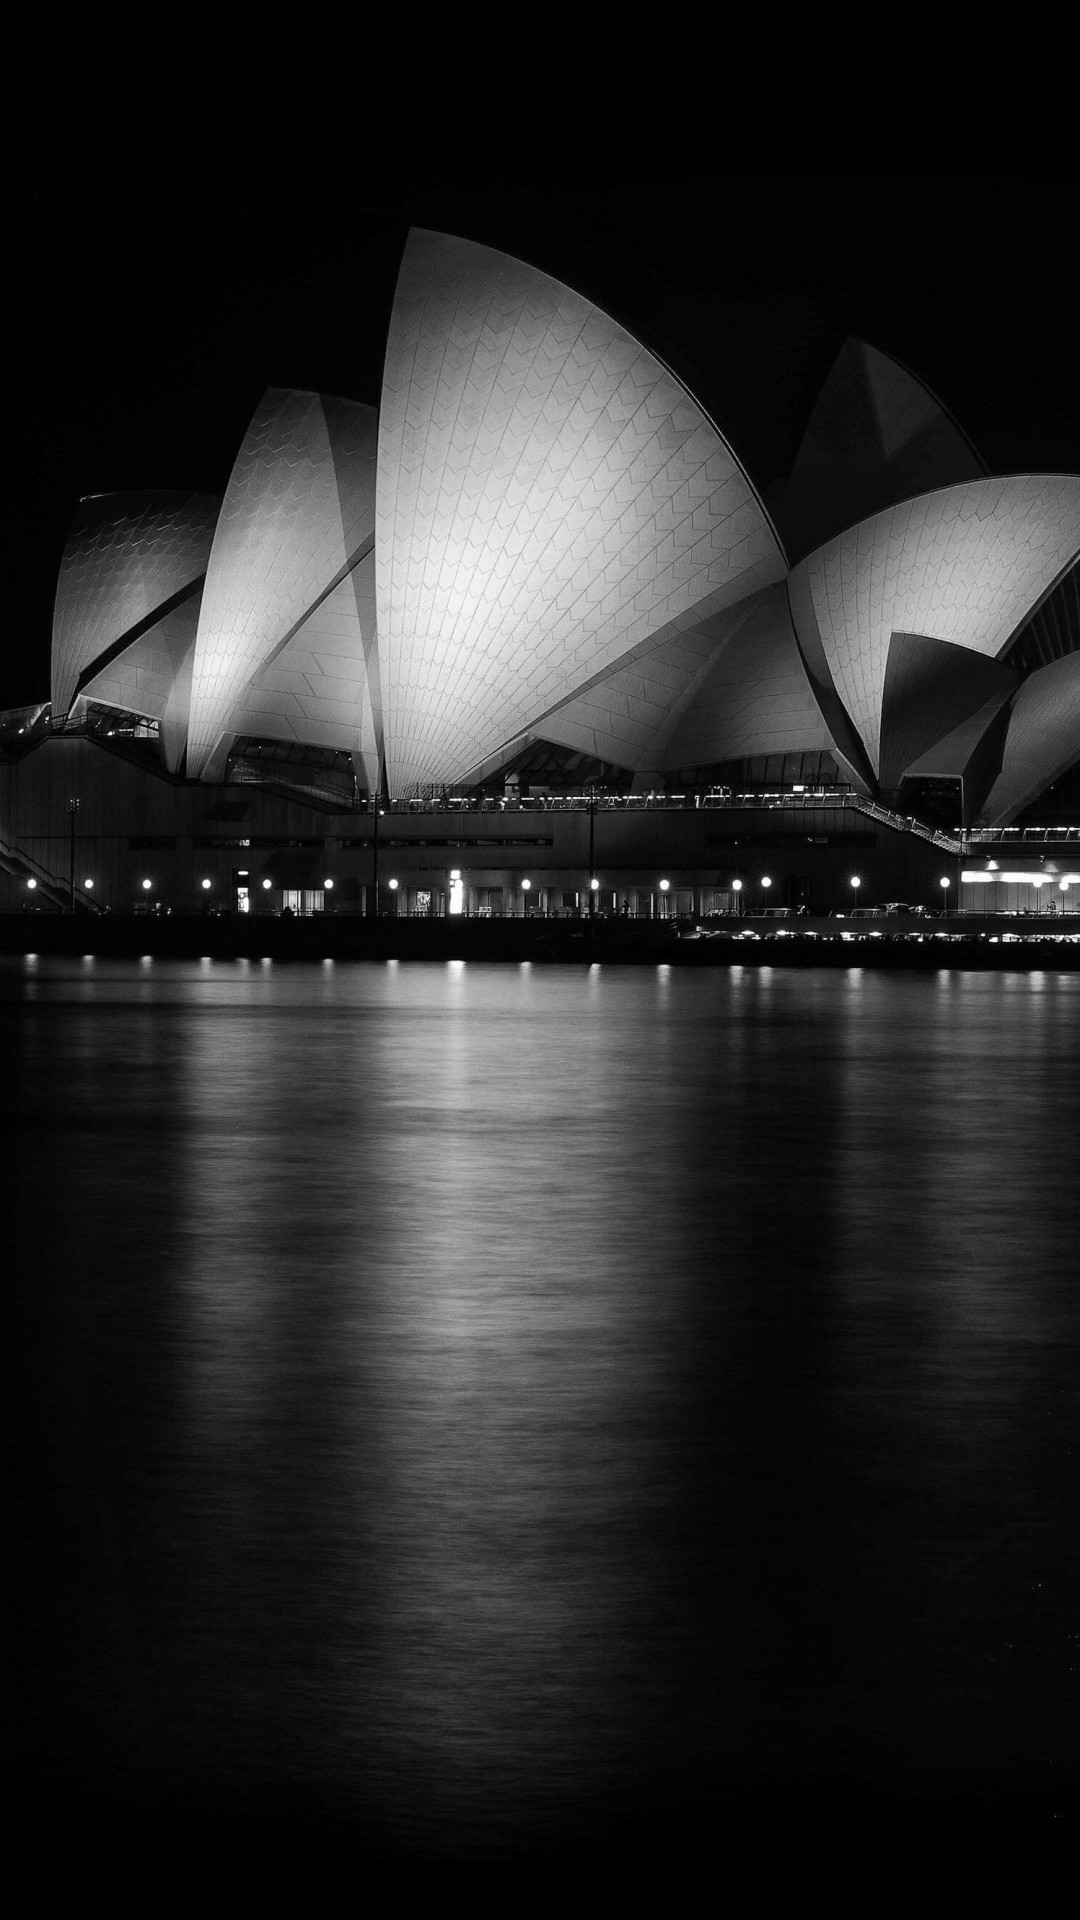 Sydney Opera House at Night in Black & White Wallpaper for SAMSUNG Galaxy Note 3